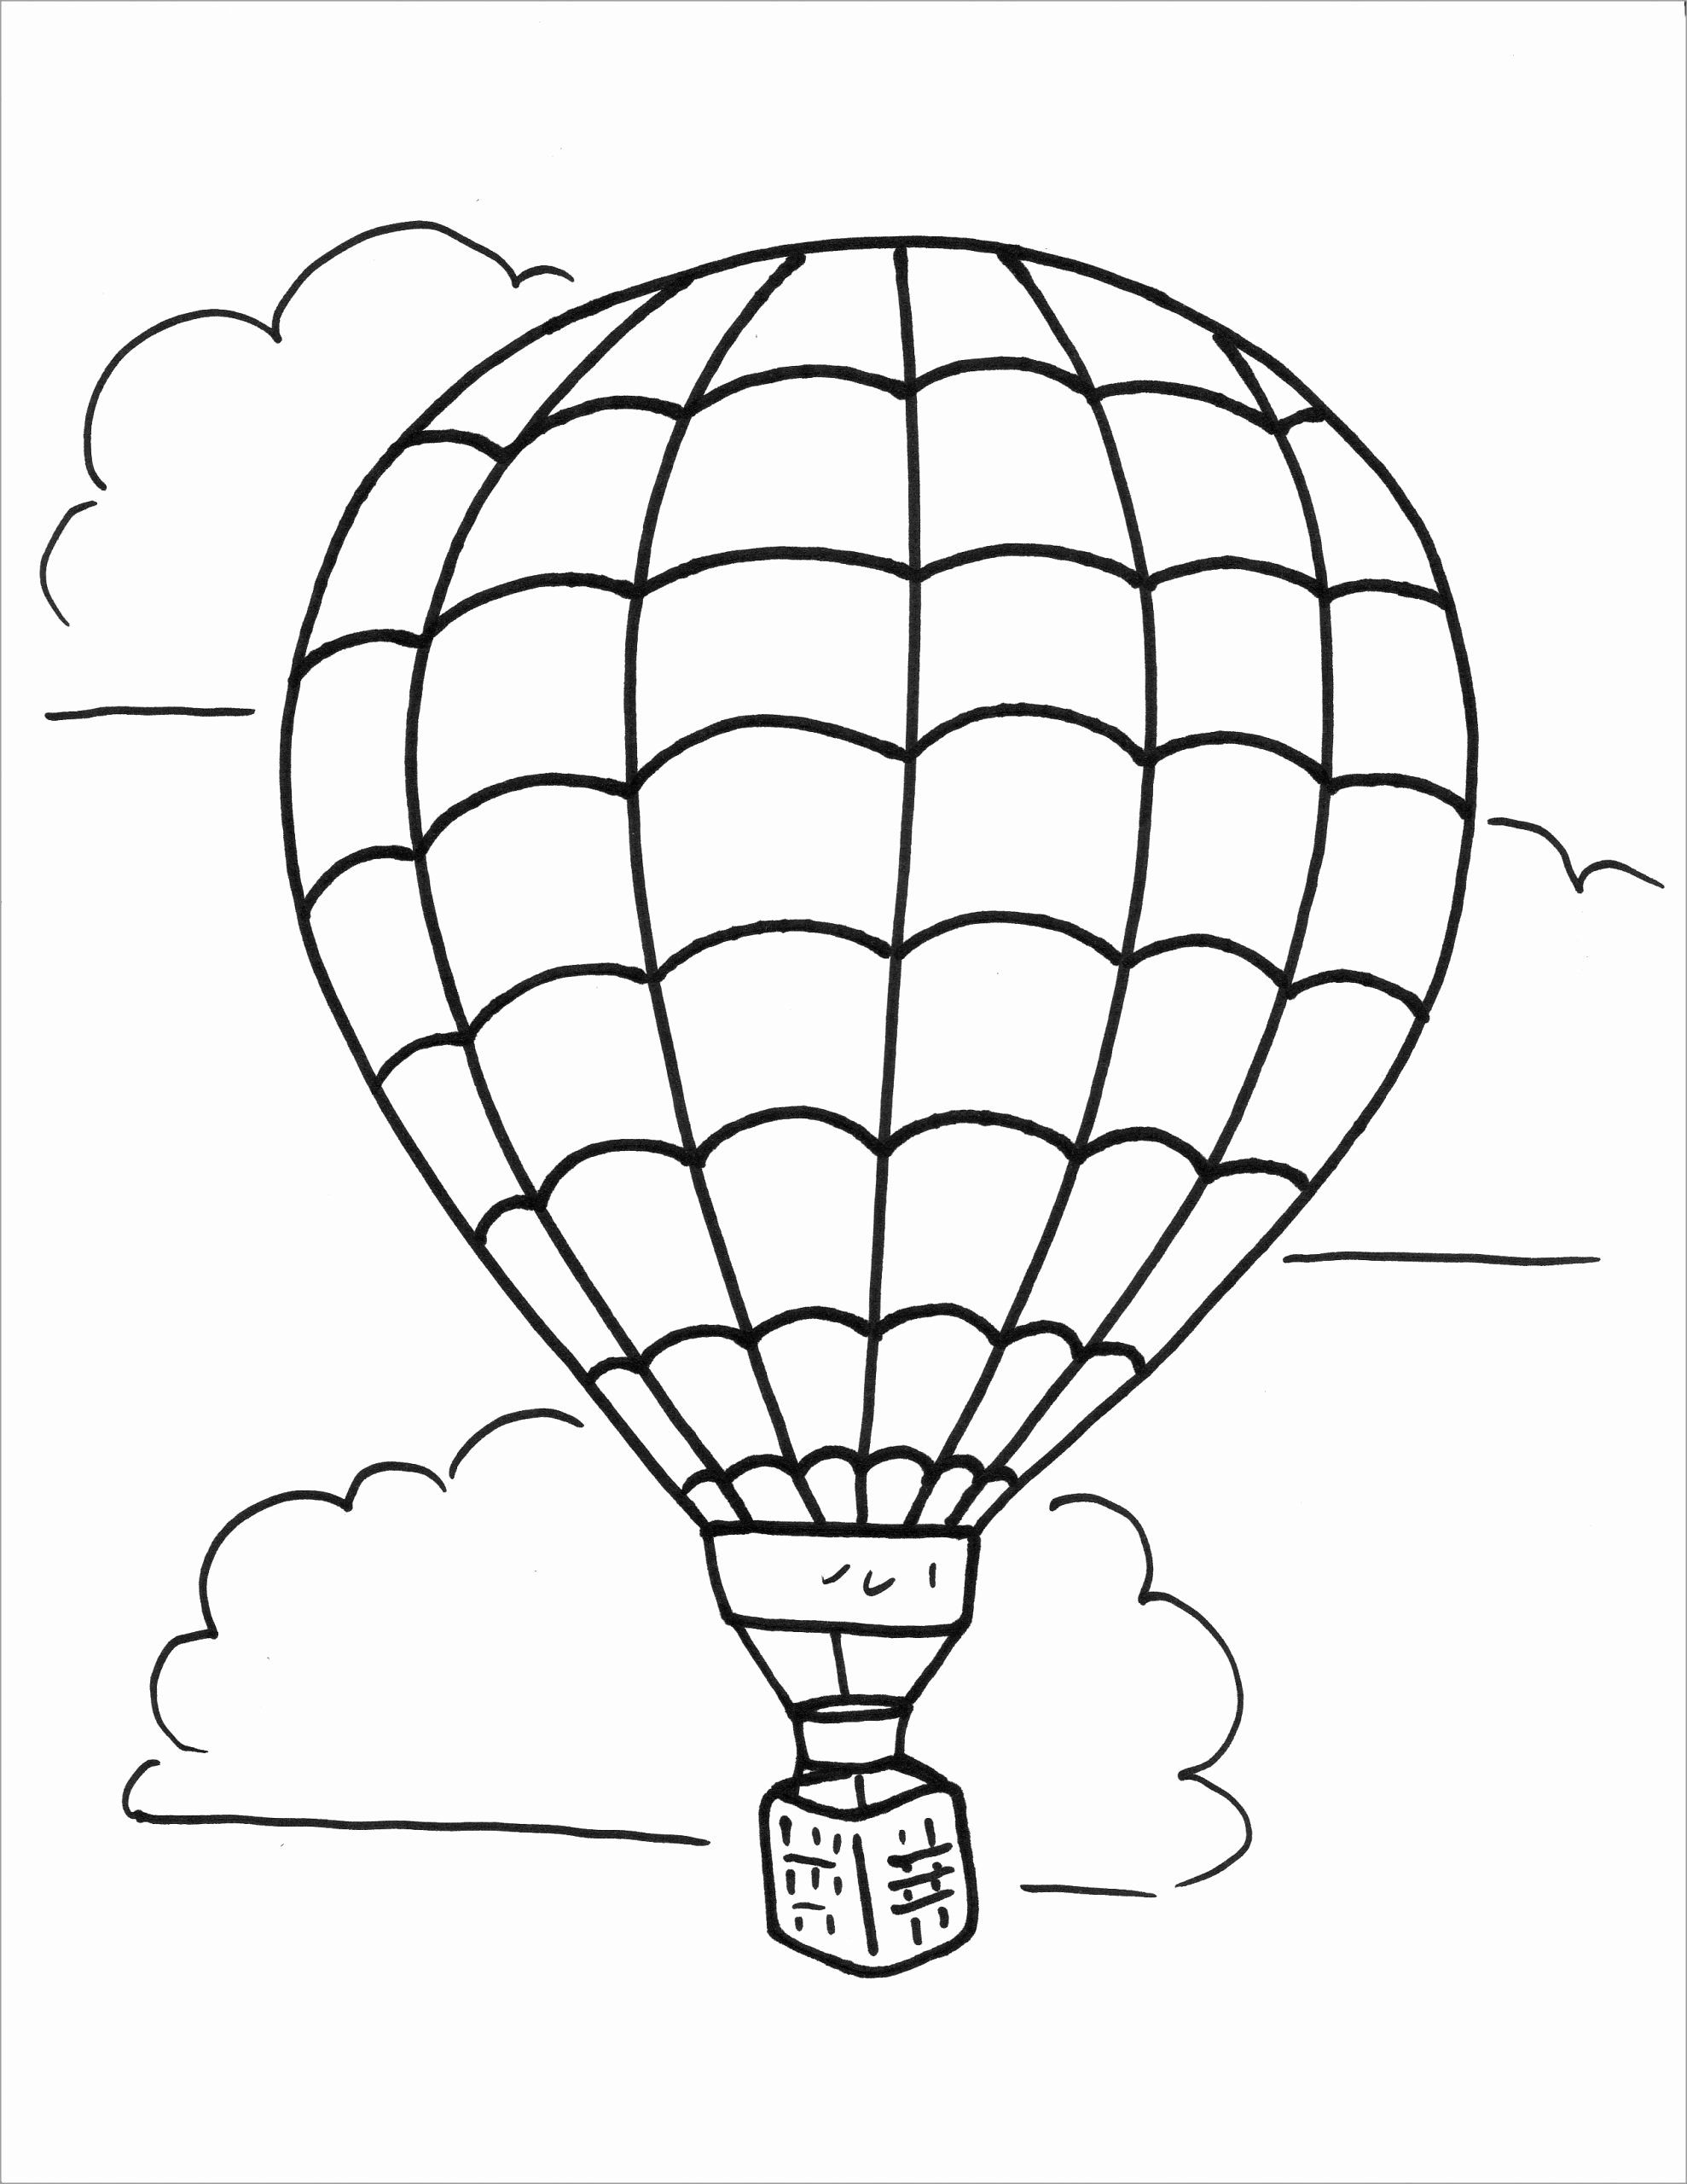 Hot Air Balloon Coloring Page Fresh Coloring Pages Coloring Hot Air Balloones Birthdaye Free In 2020 Air Balloon Hot Air Balloon Drawing Balloon Template